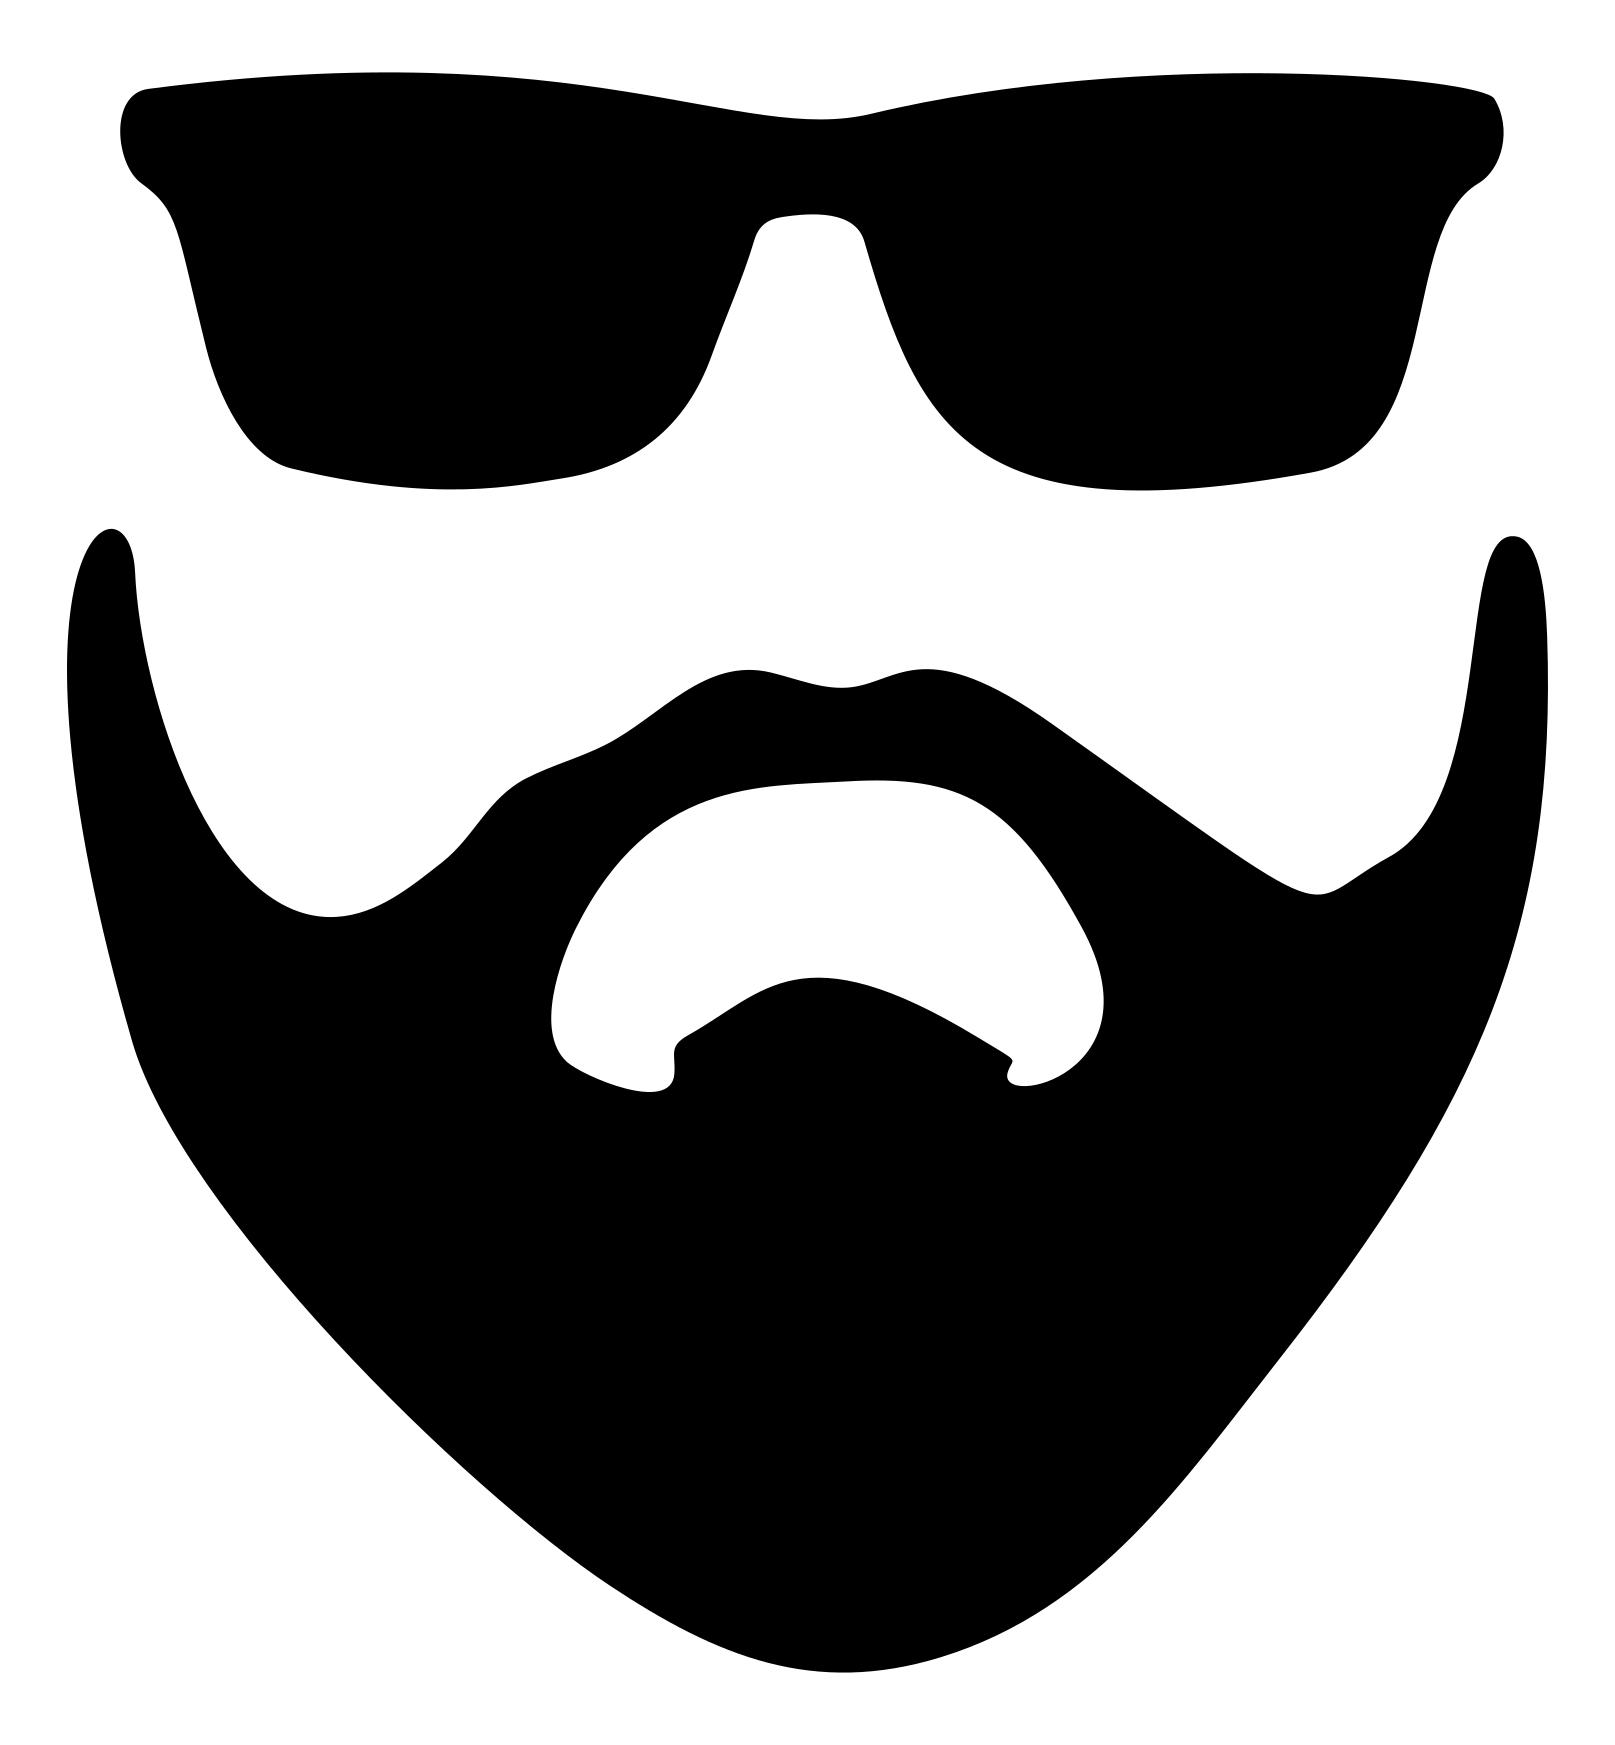 1615x1745 Beard And Sunglasses Silhouette Clipart